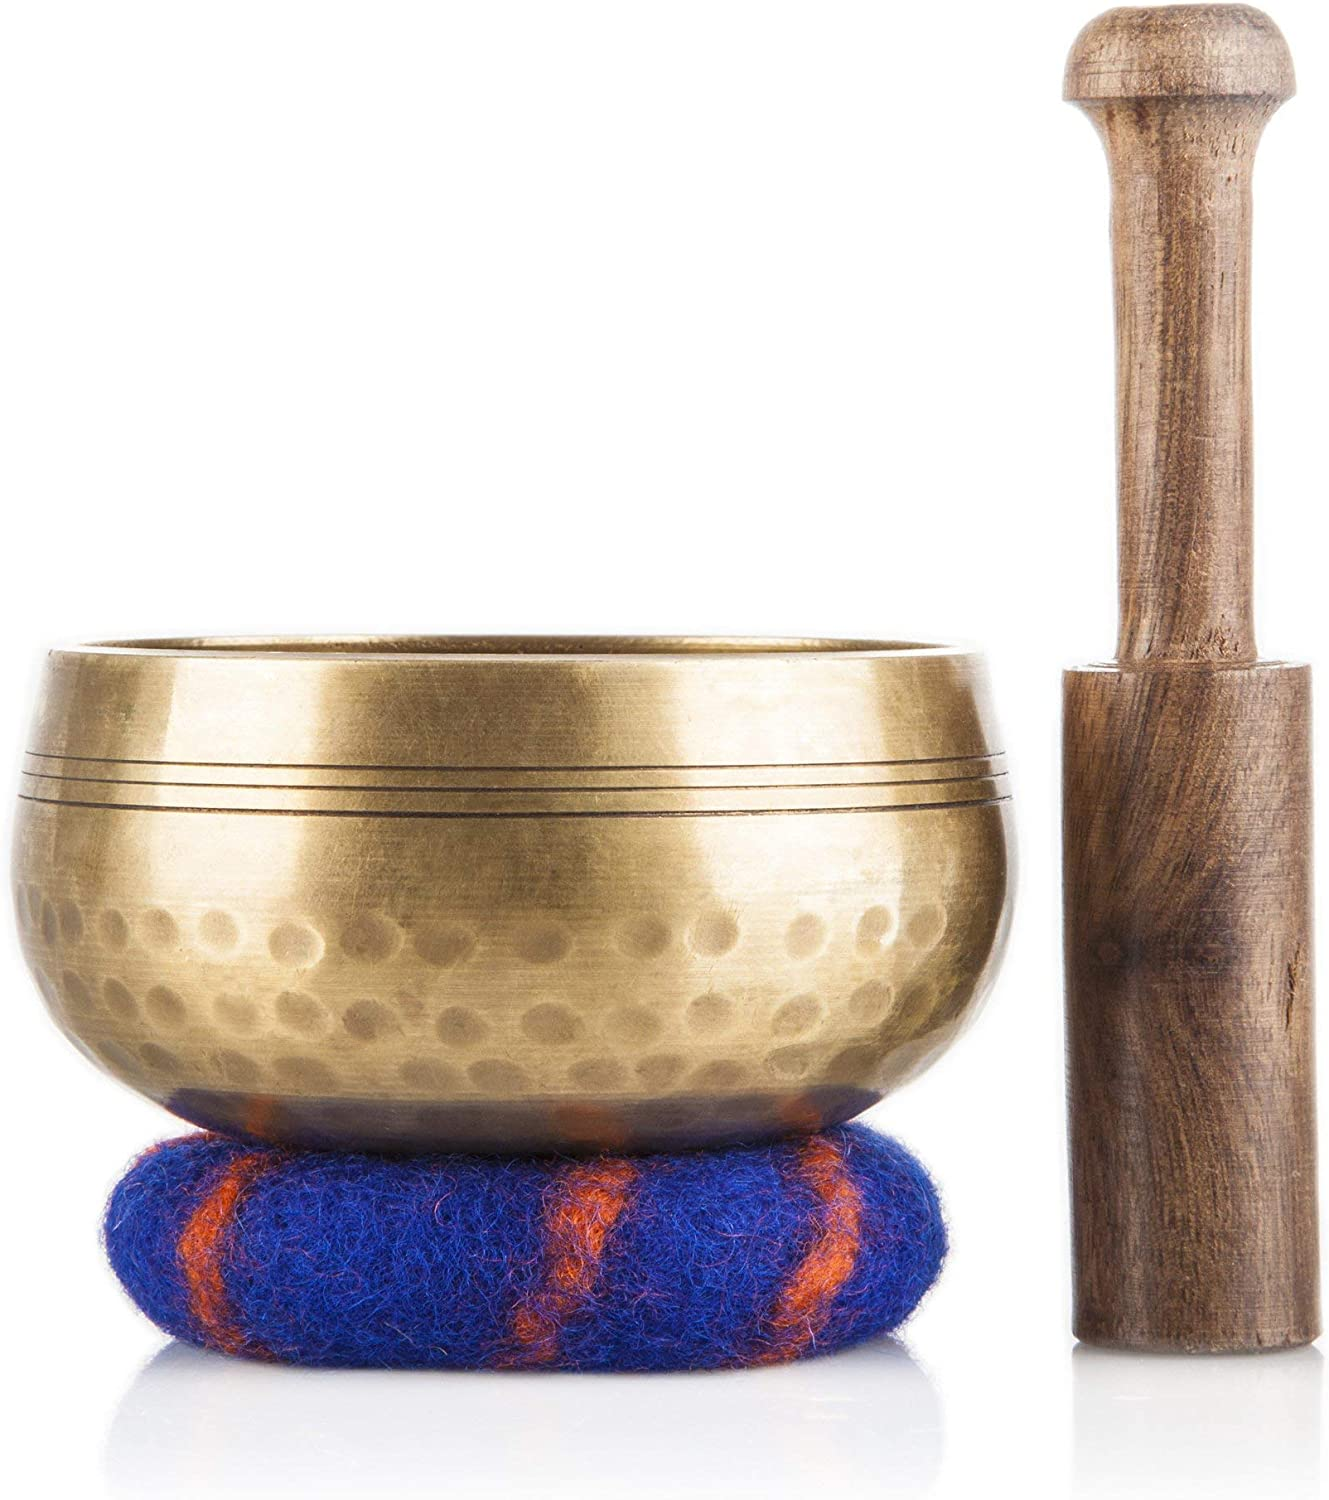 Tibetan Singing Bowl Set - Meditation Sound Bowl Handcrafted in Nepal for Healing and Mindfulness